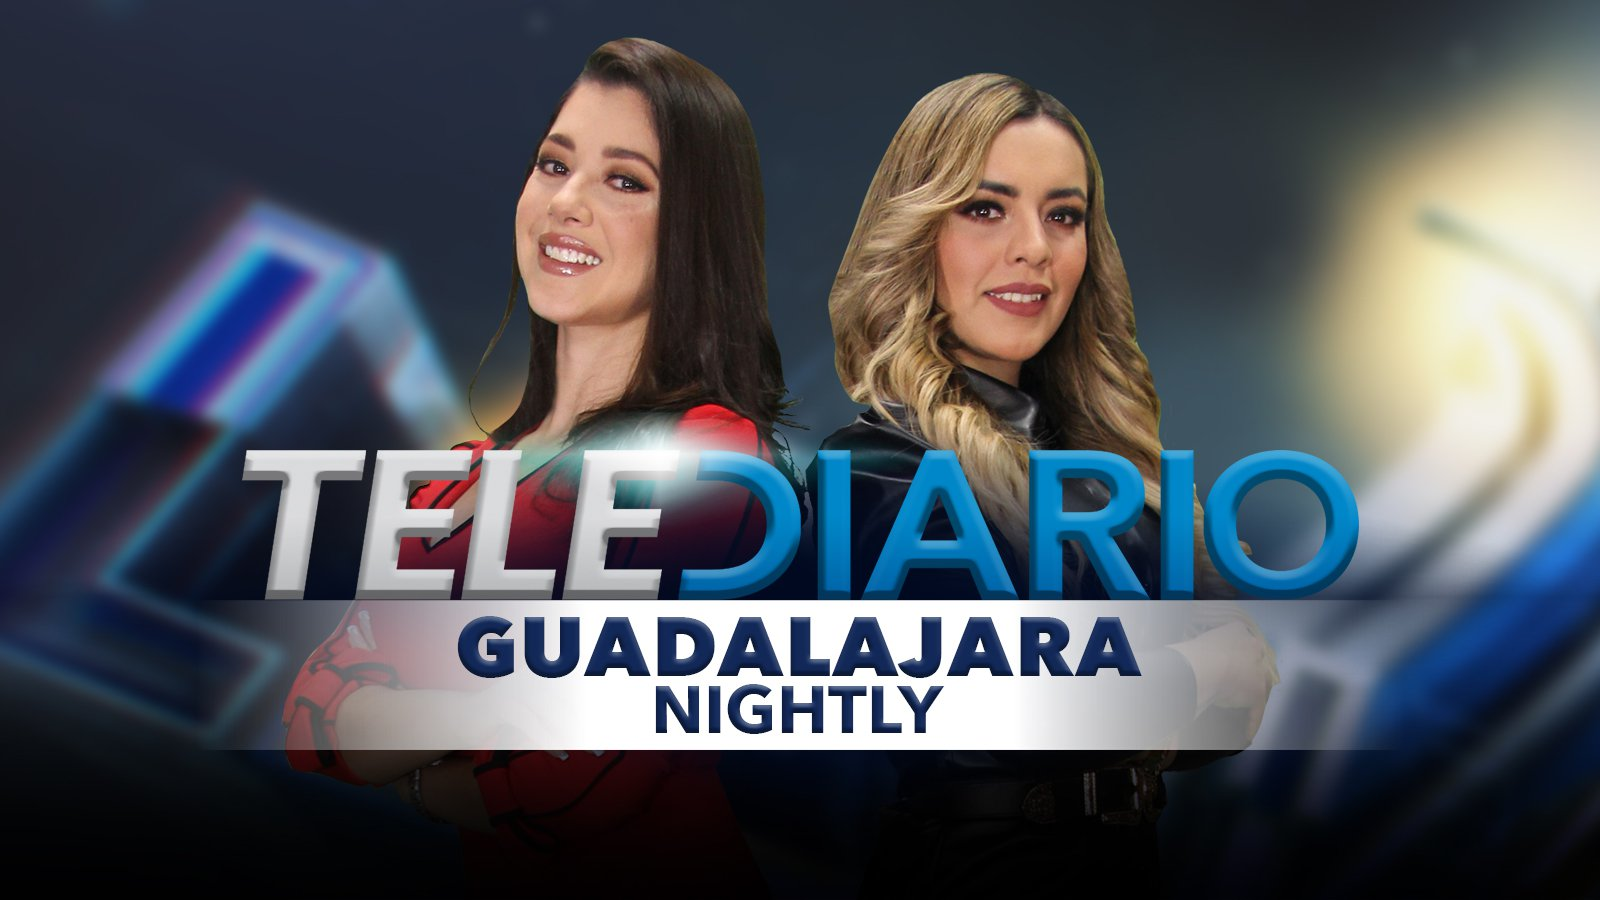 Nightly GDL Telediario poster